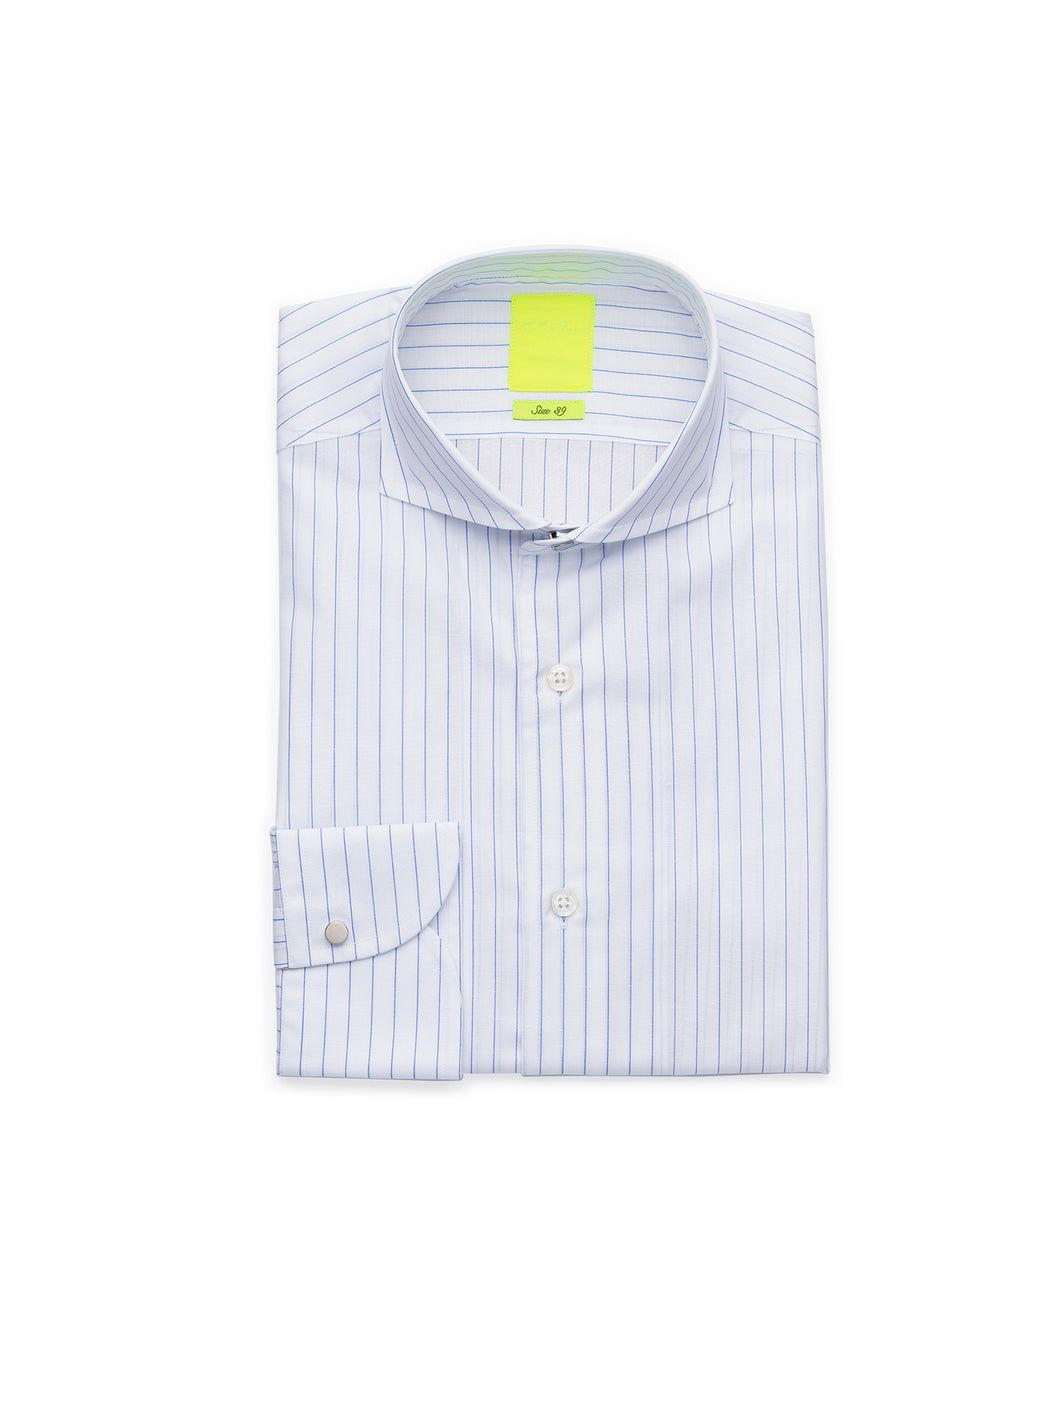 SUMMER TRAVELLER STRIPED SHIRT - JOURNEY COTTON LINEN